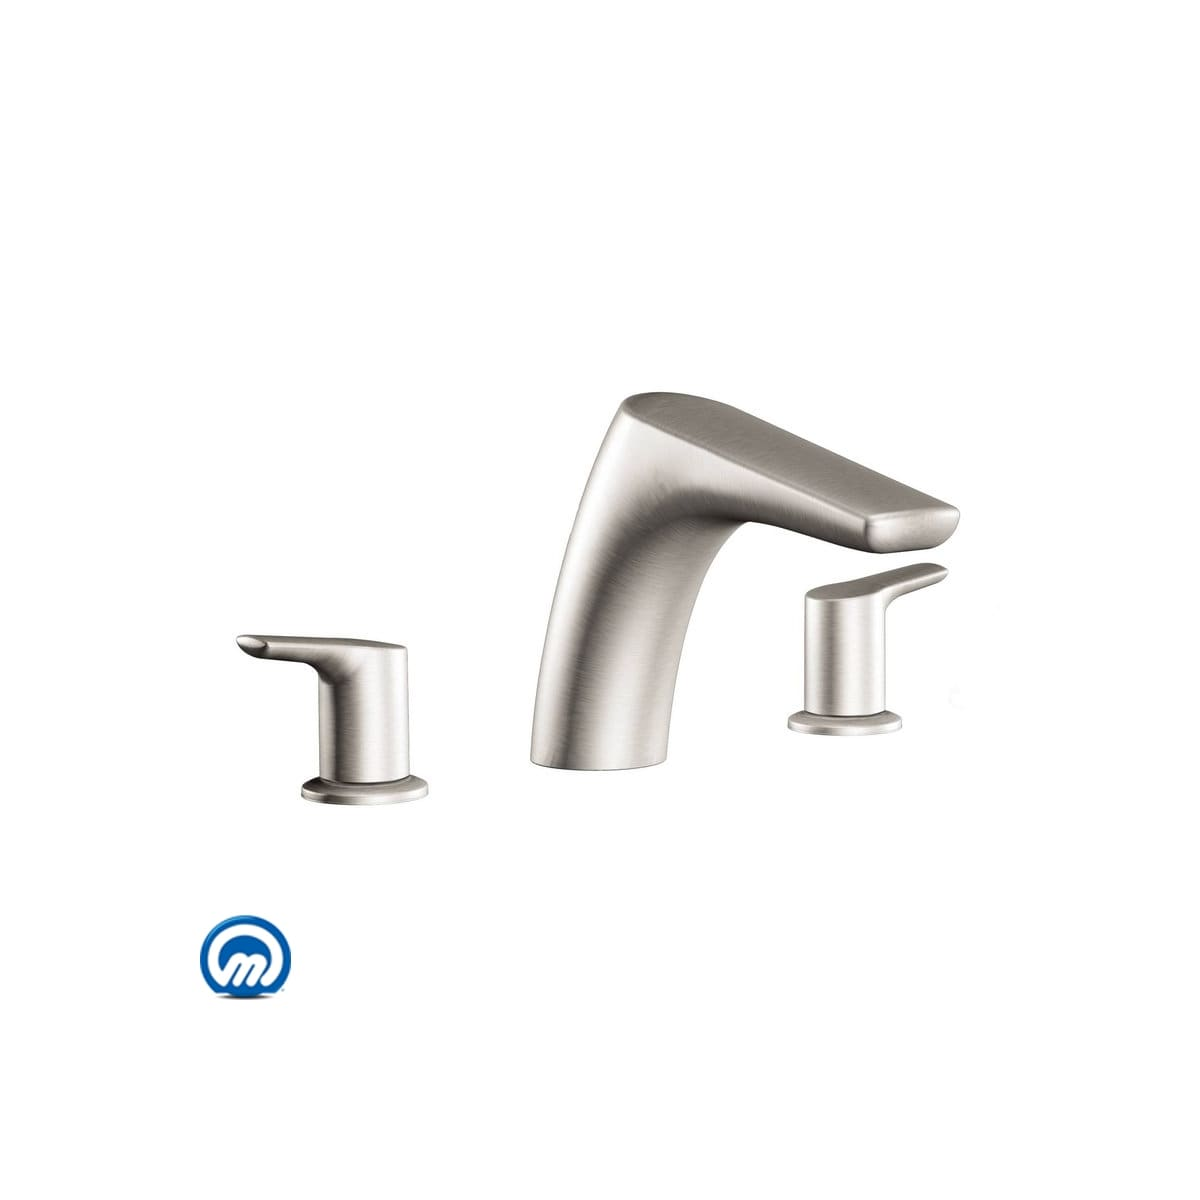 Moen T986bn Brushed Nickel Deck Mounted Roman Tub Filler Trim From